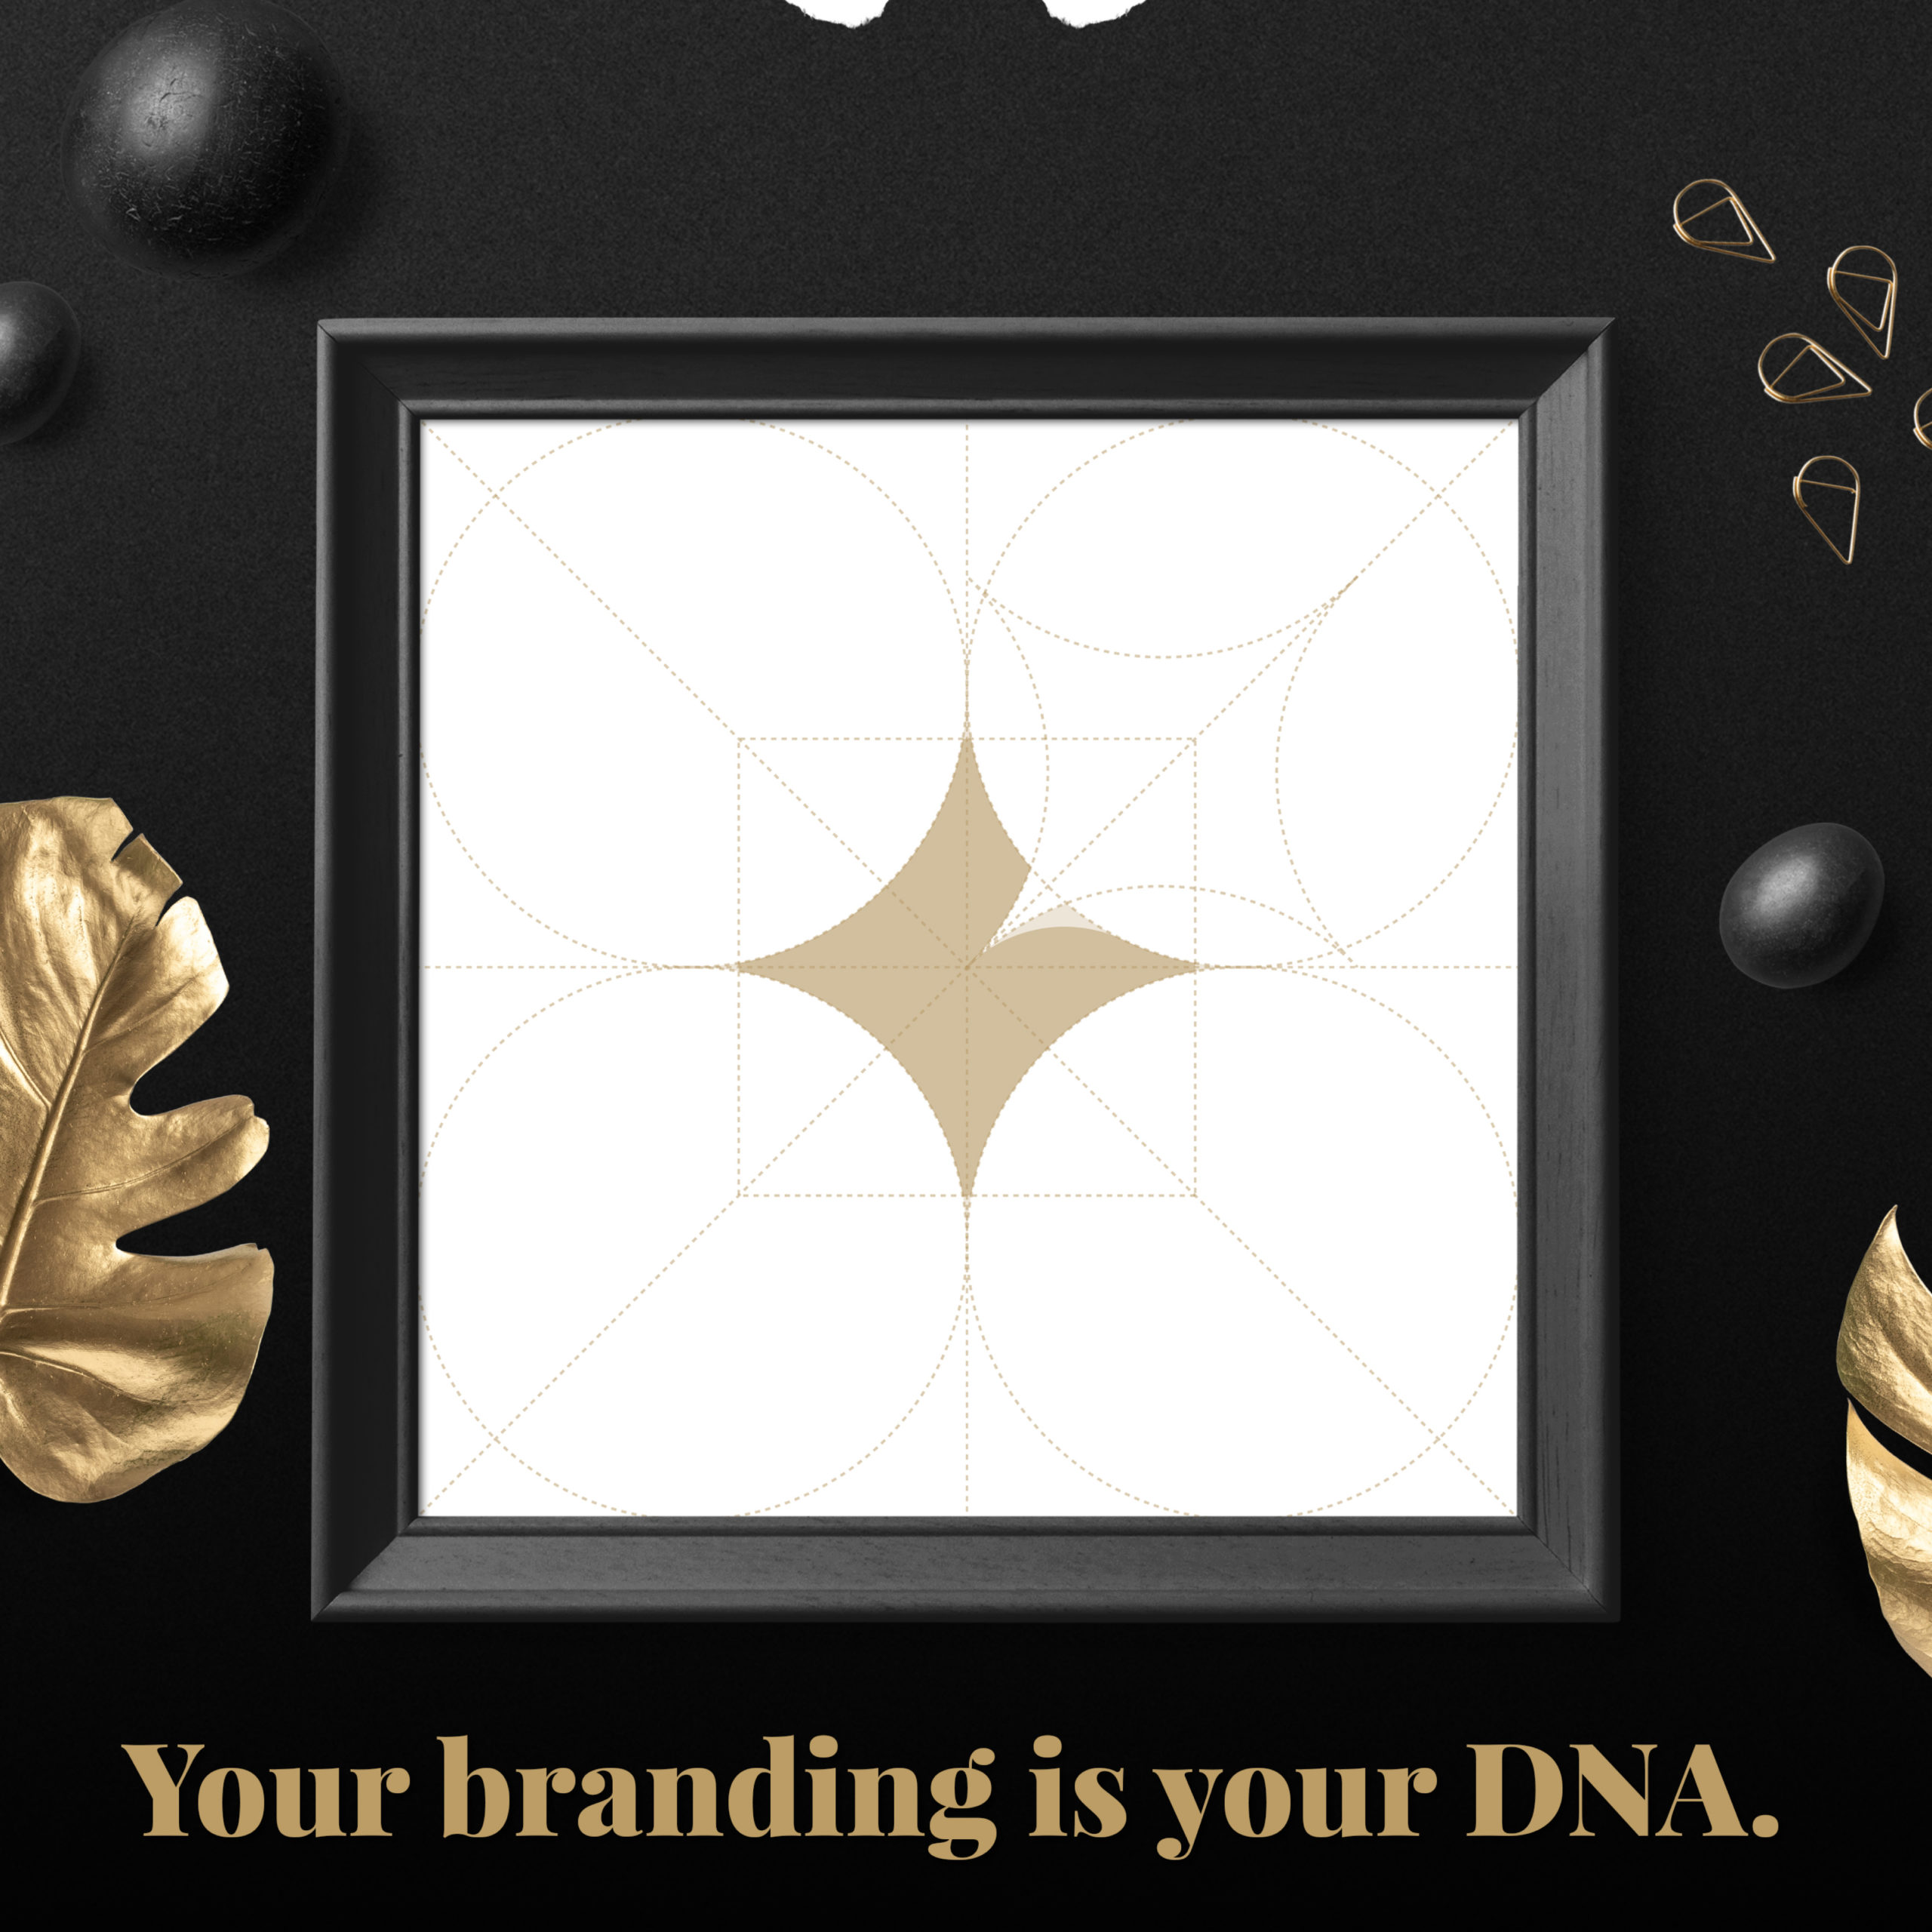 Your branding is your DNA.